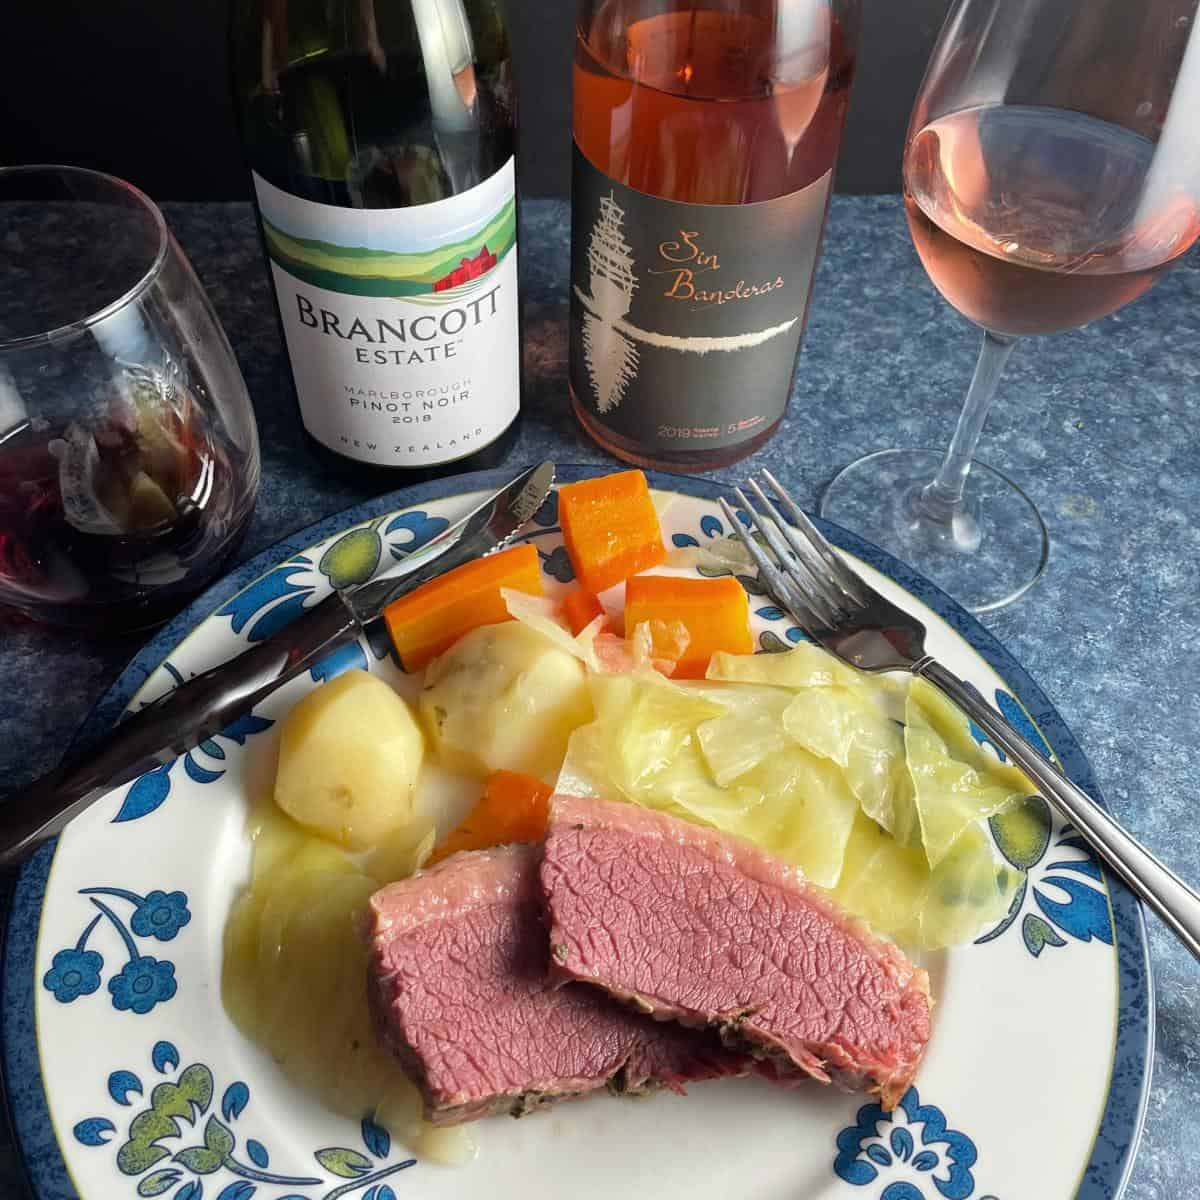 plate of corned beef and cabbage served with a rosé wine and a Pinot Noir.